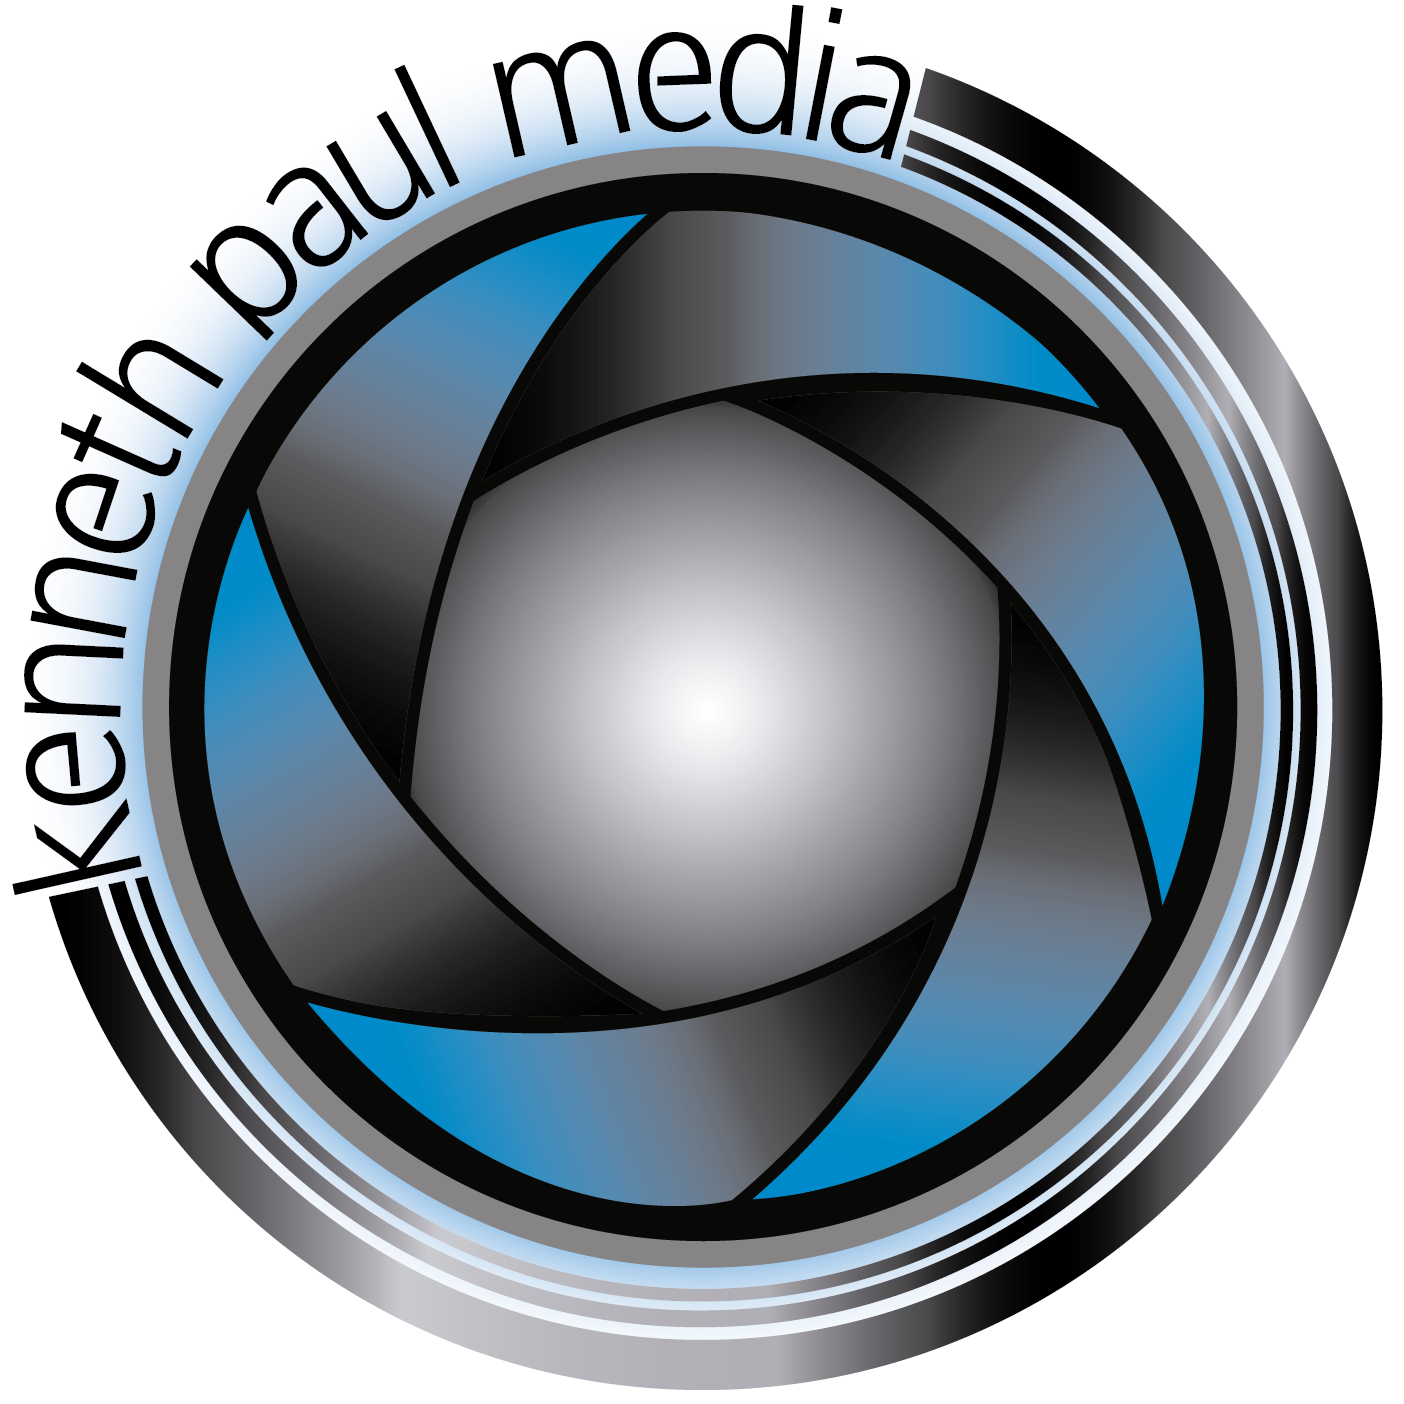 Kenneth Paul Media Studio